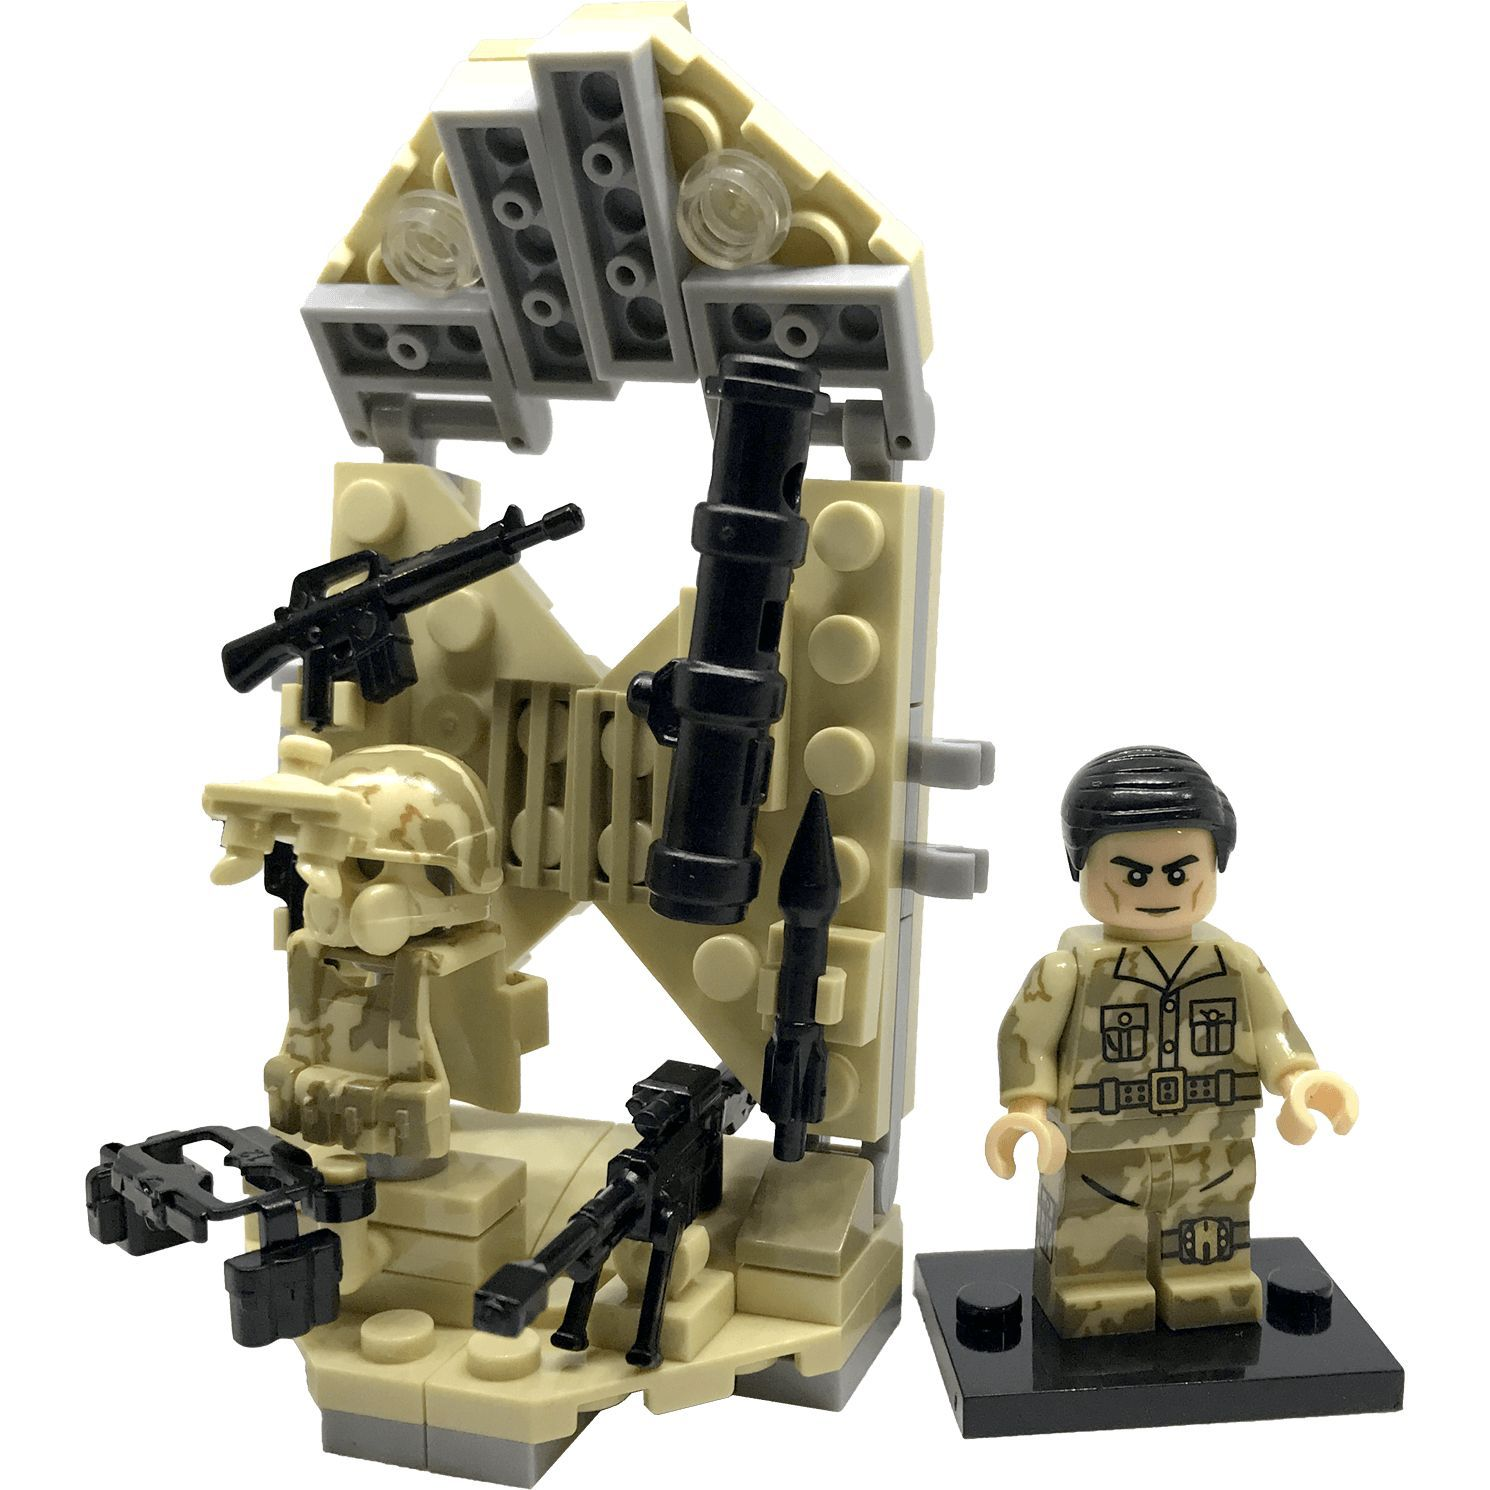 Brick Forces Minifigure Soldier With Armory - Bill